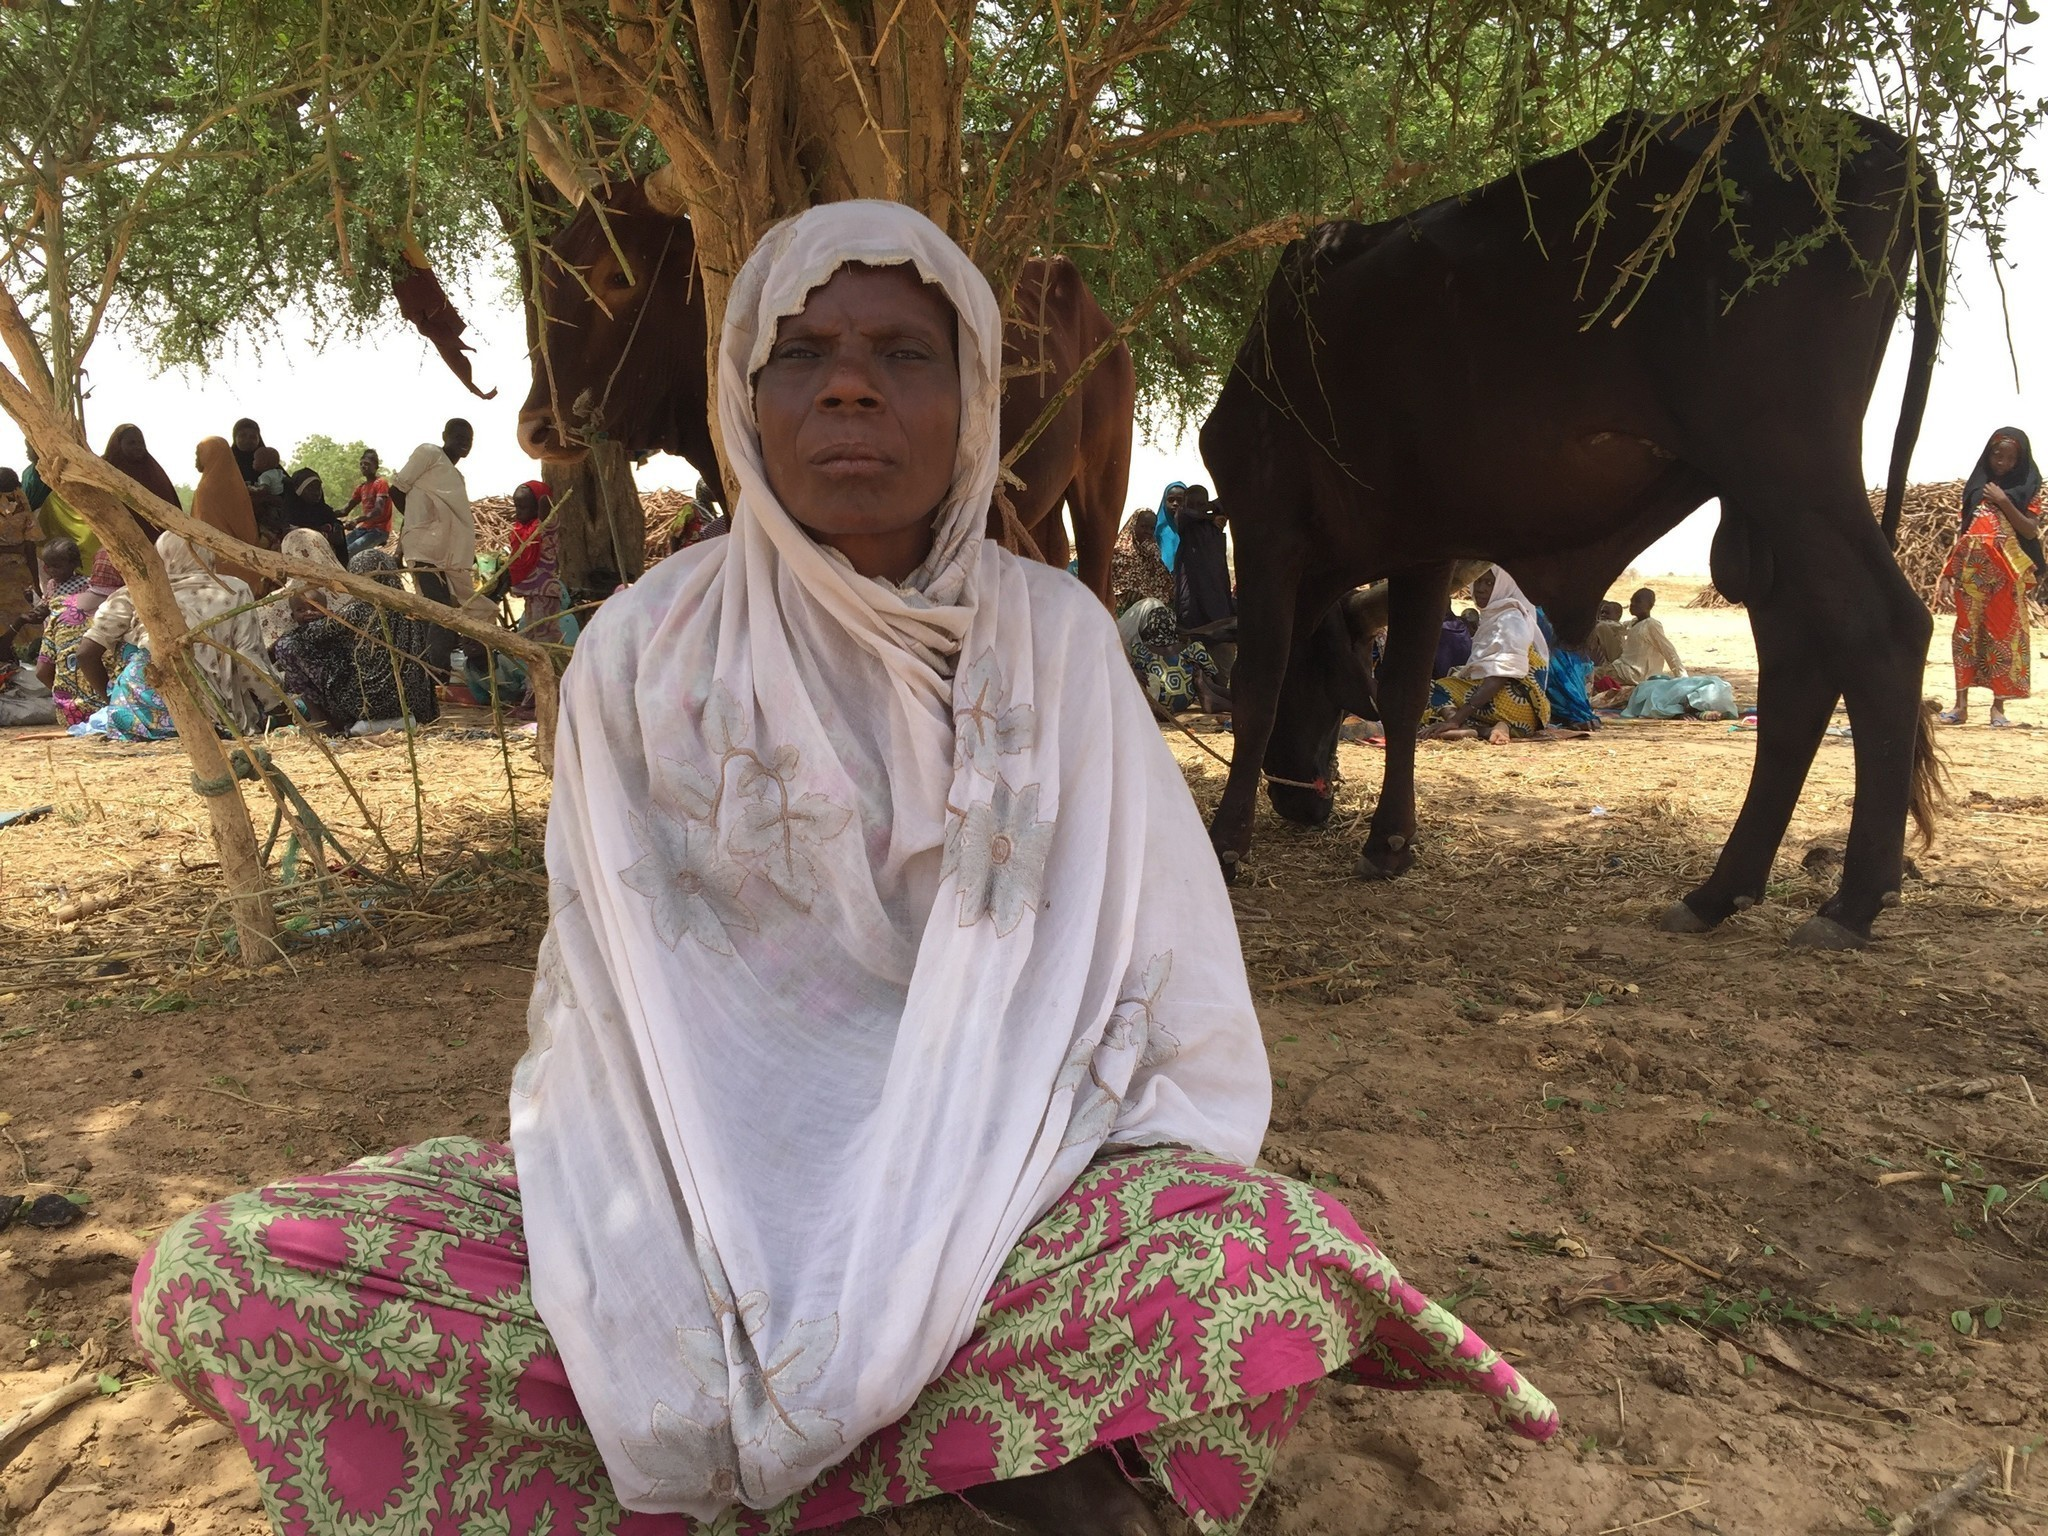 People cheered the release of Nigeria's 'Chibok girls' — but thousands of others were kidnapped, raped and forgotten